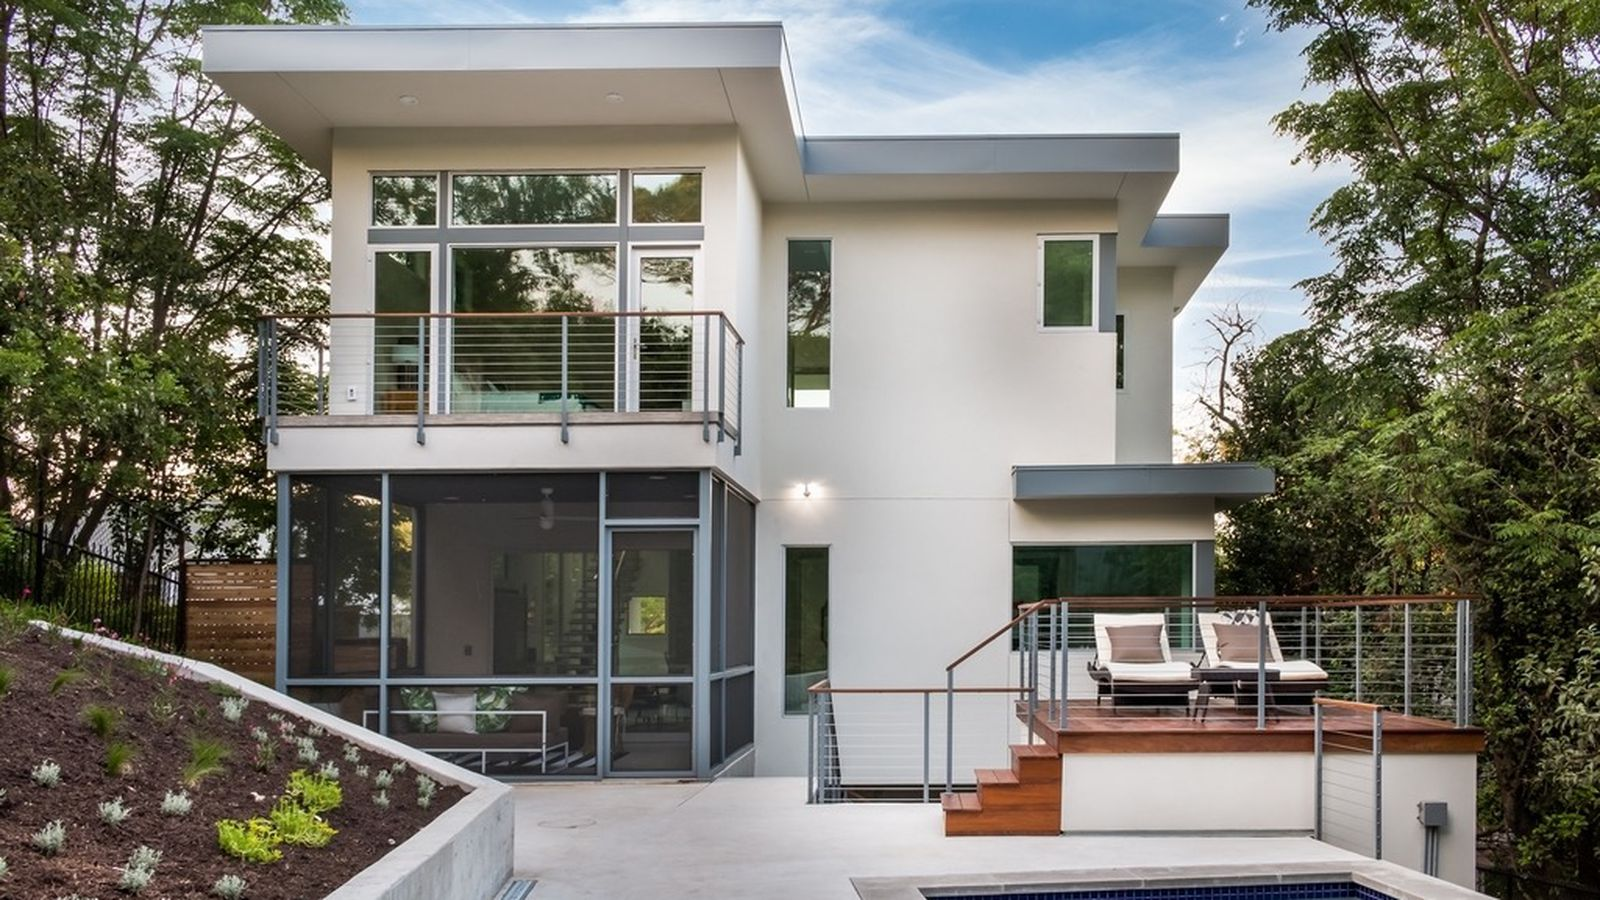 Grabner Pool Sandfilteranlage Sf 1025 Stunning New Travis Heights Mod Hits Market For 2 75m